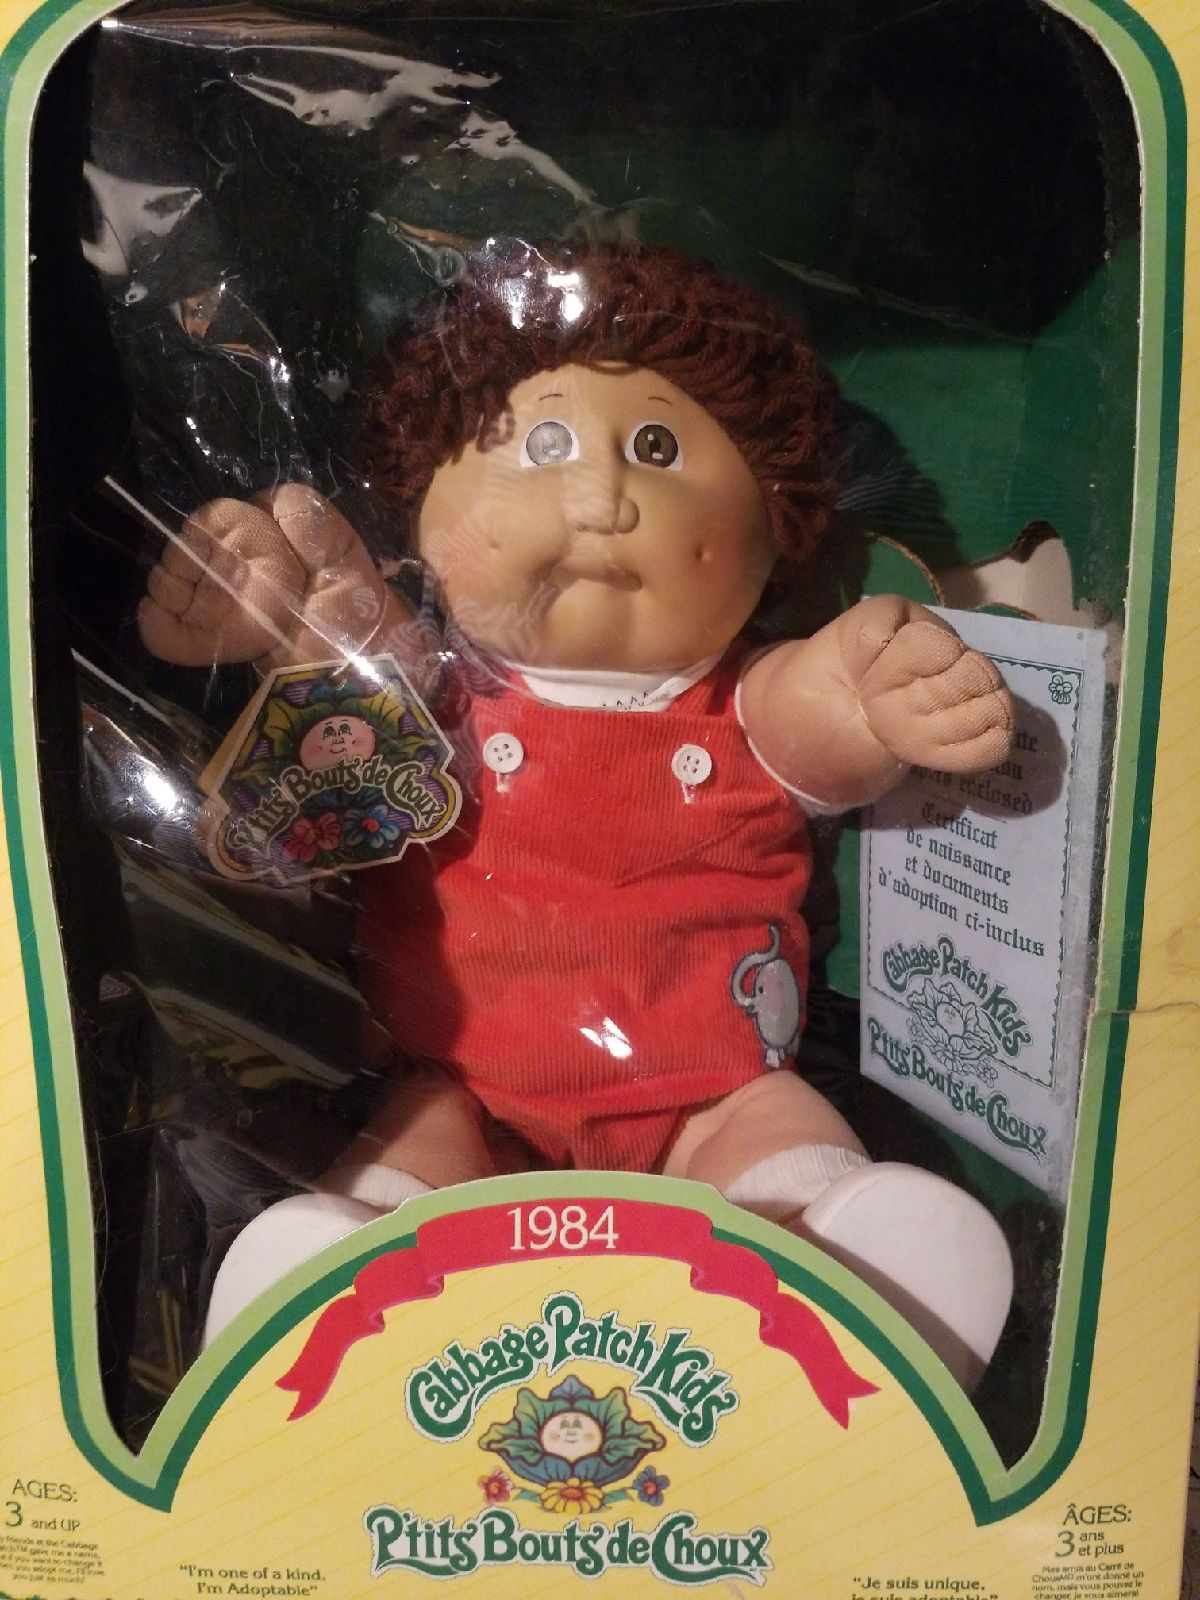 Cute Prtits Bouts De Choux Cabbage Patch Doll 1984 New In Box Has French Birth Certificate G Cabbage Patch Dolls Cabbage Patch Kids Dolls Cabbage Patch Kids